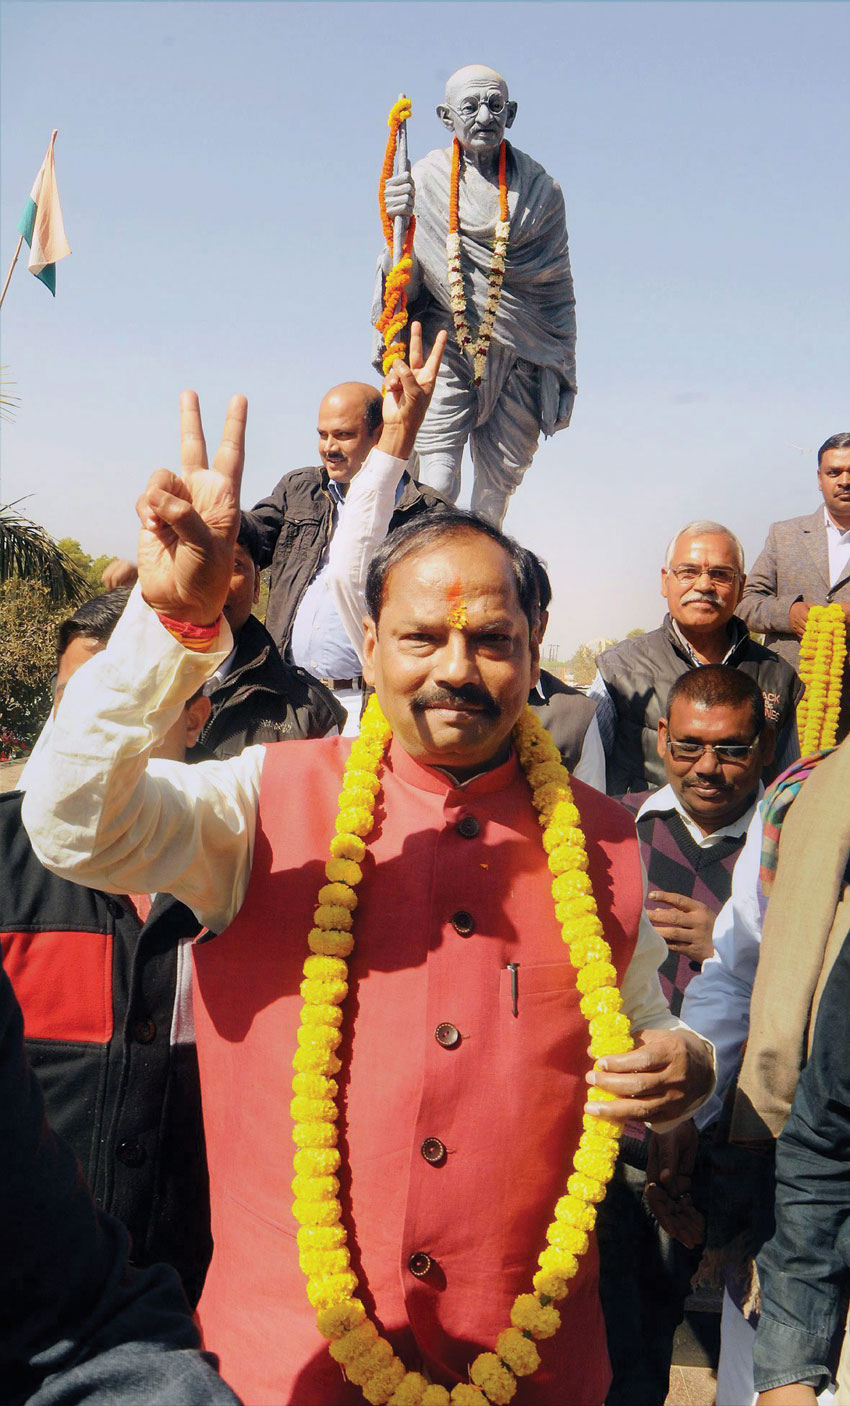 Jharkhand Chief Minister Raghubar Das flashes victory sign after taking oath at Morabadi Ground in Ranchi. (Press Trust of India)